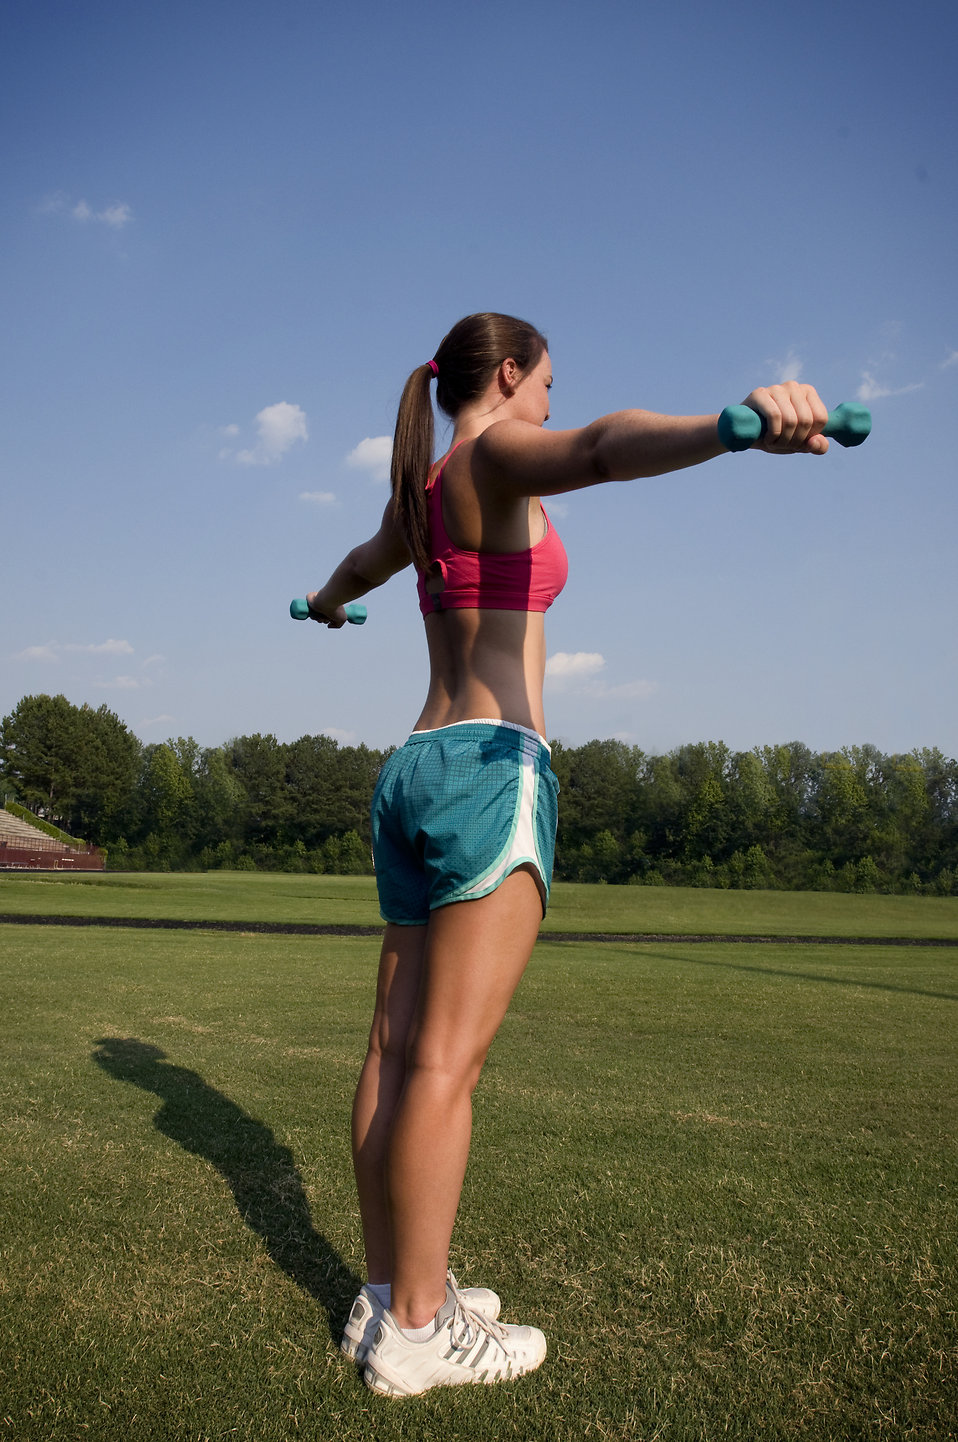 A healthy young woman warming up for exercise outdoors : Free Stock Photo